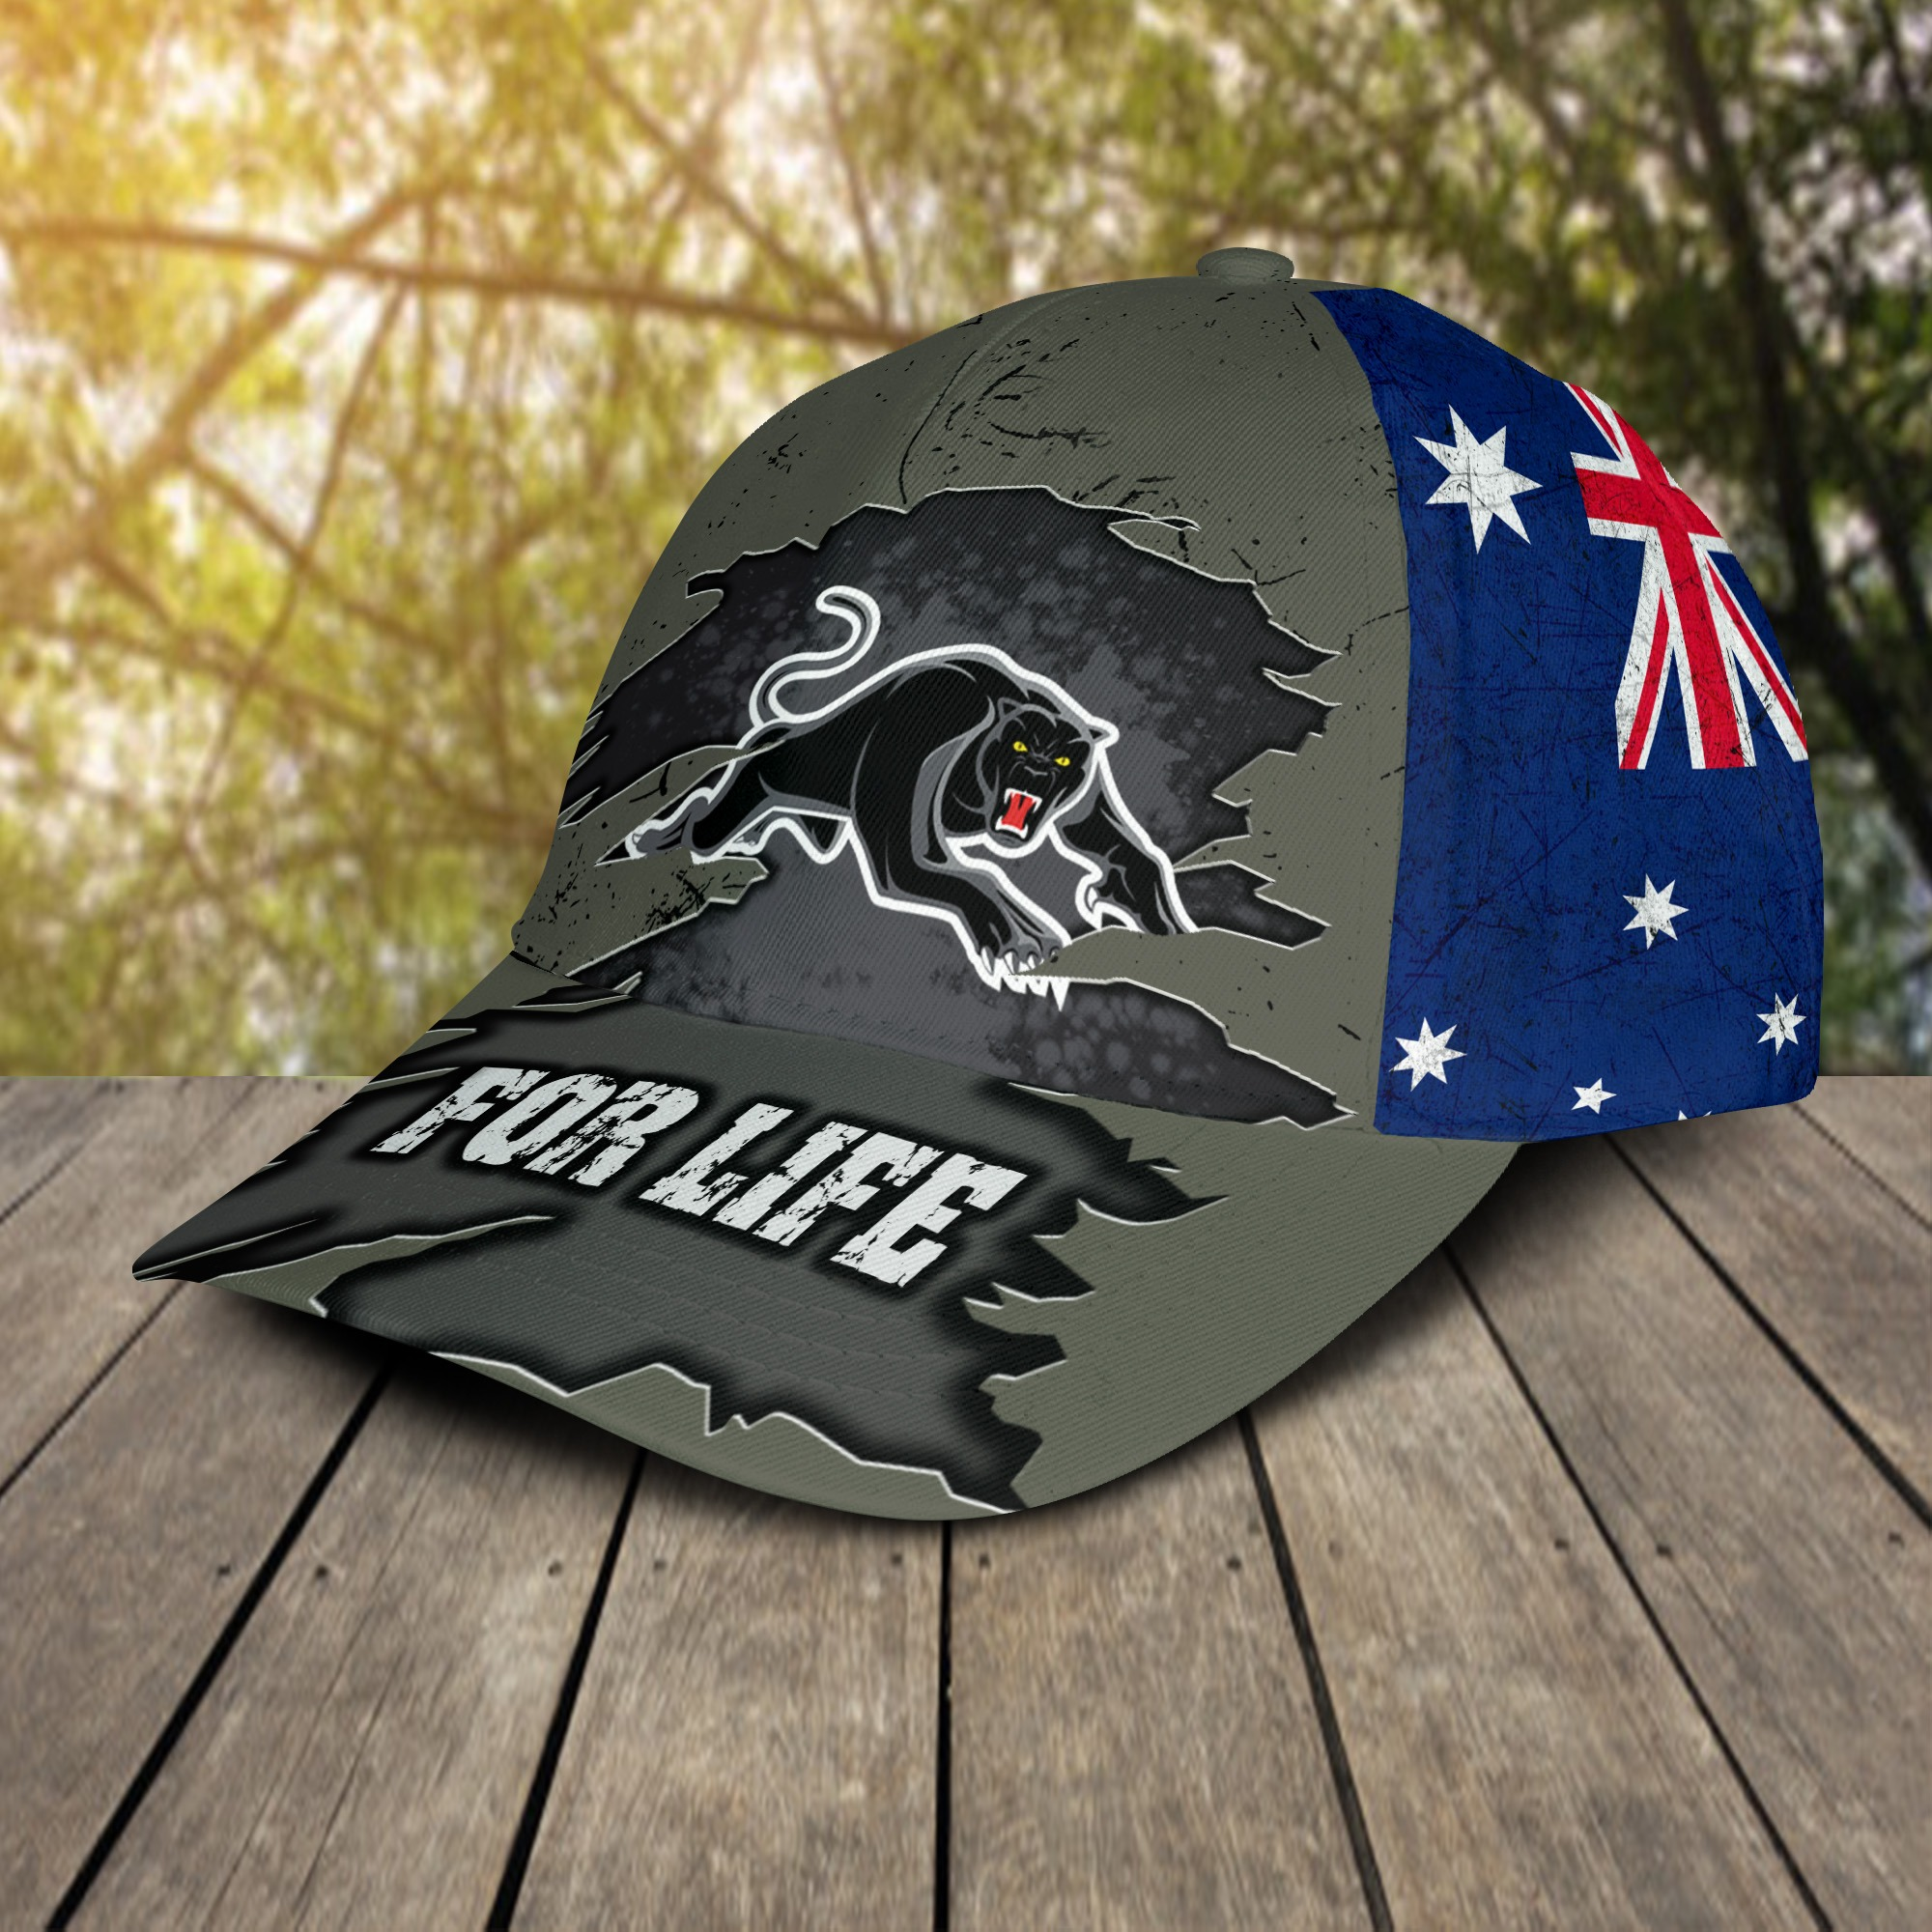 Penrith Panthers for life cap 2